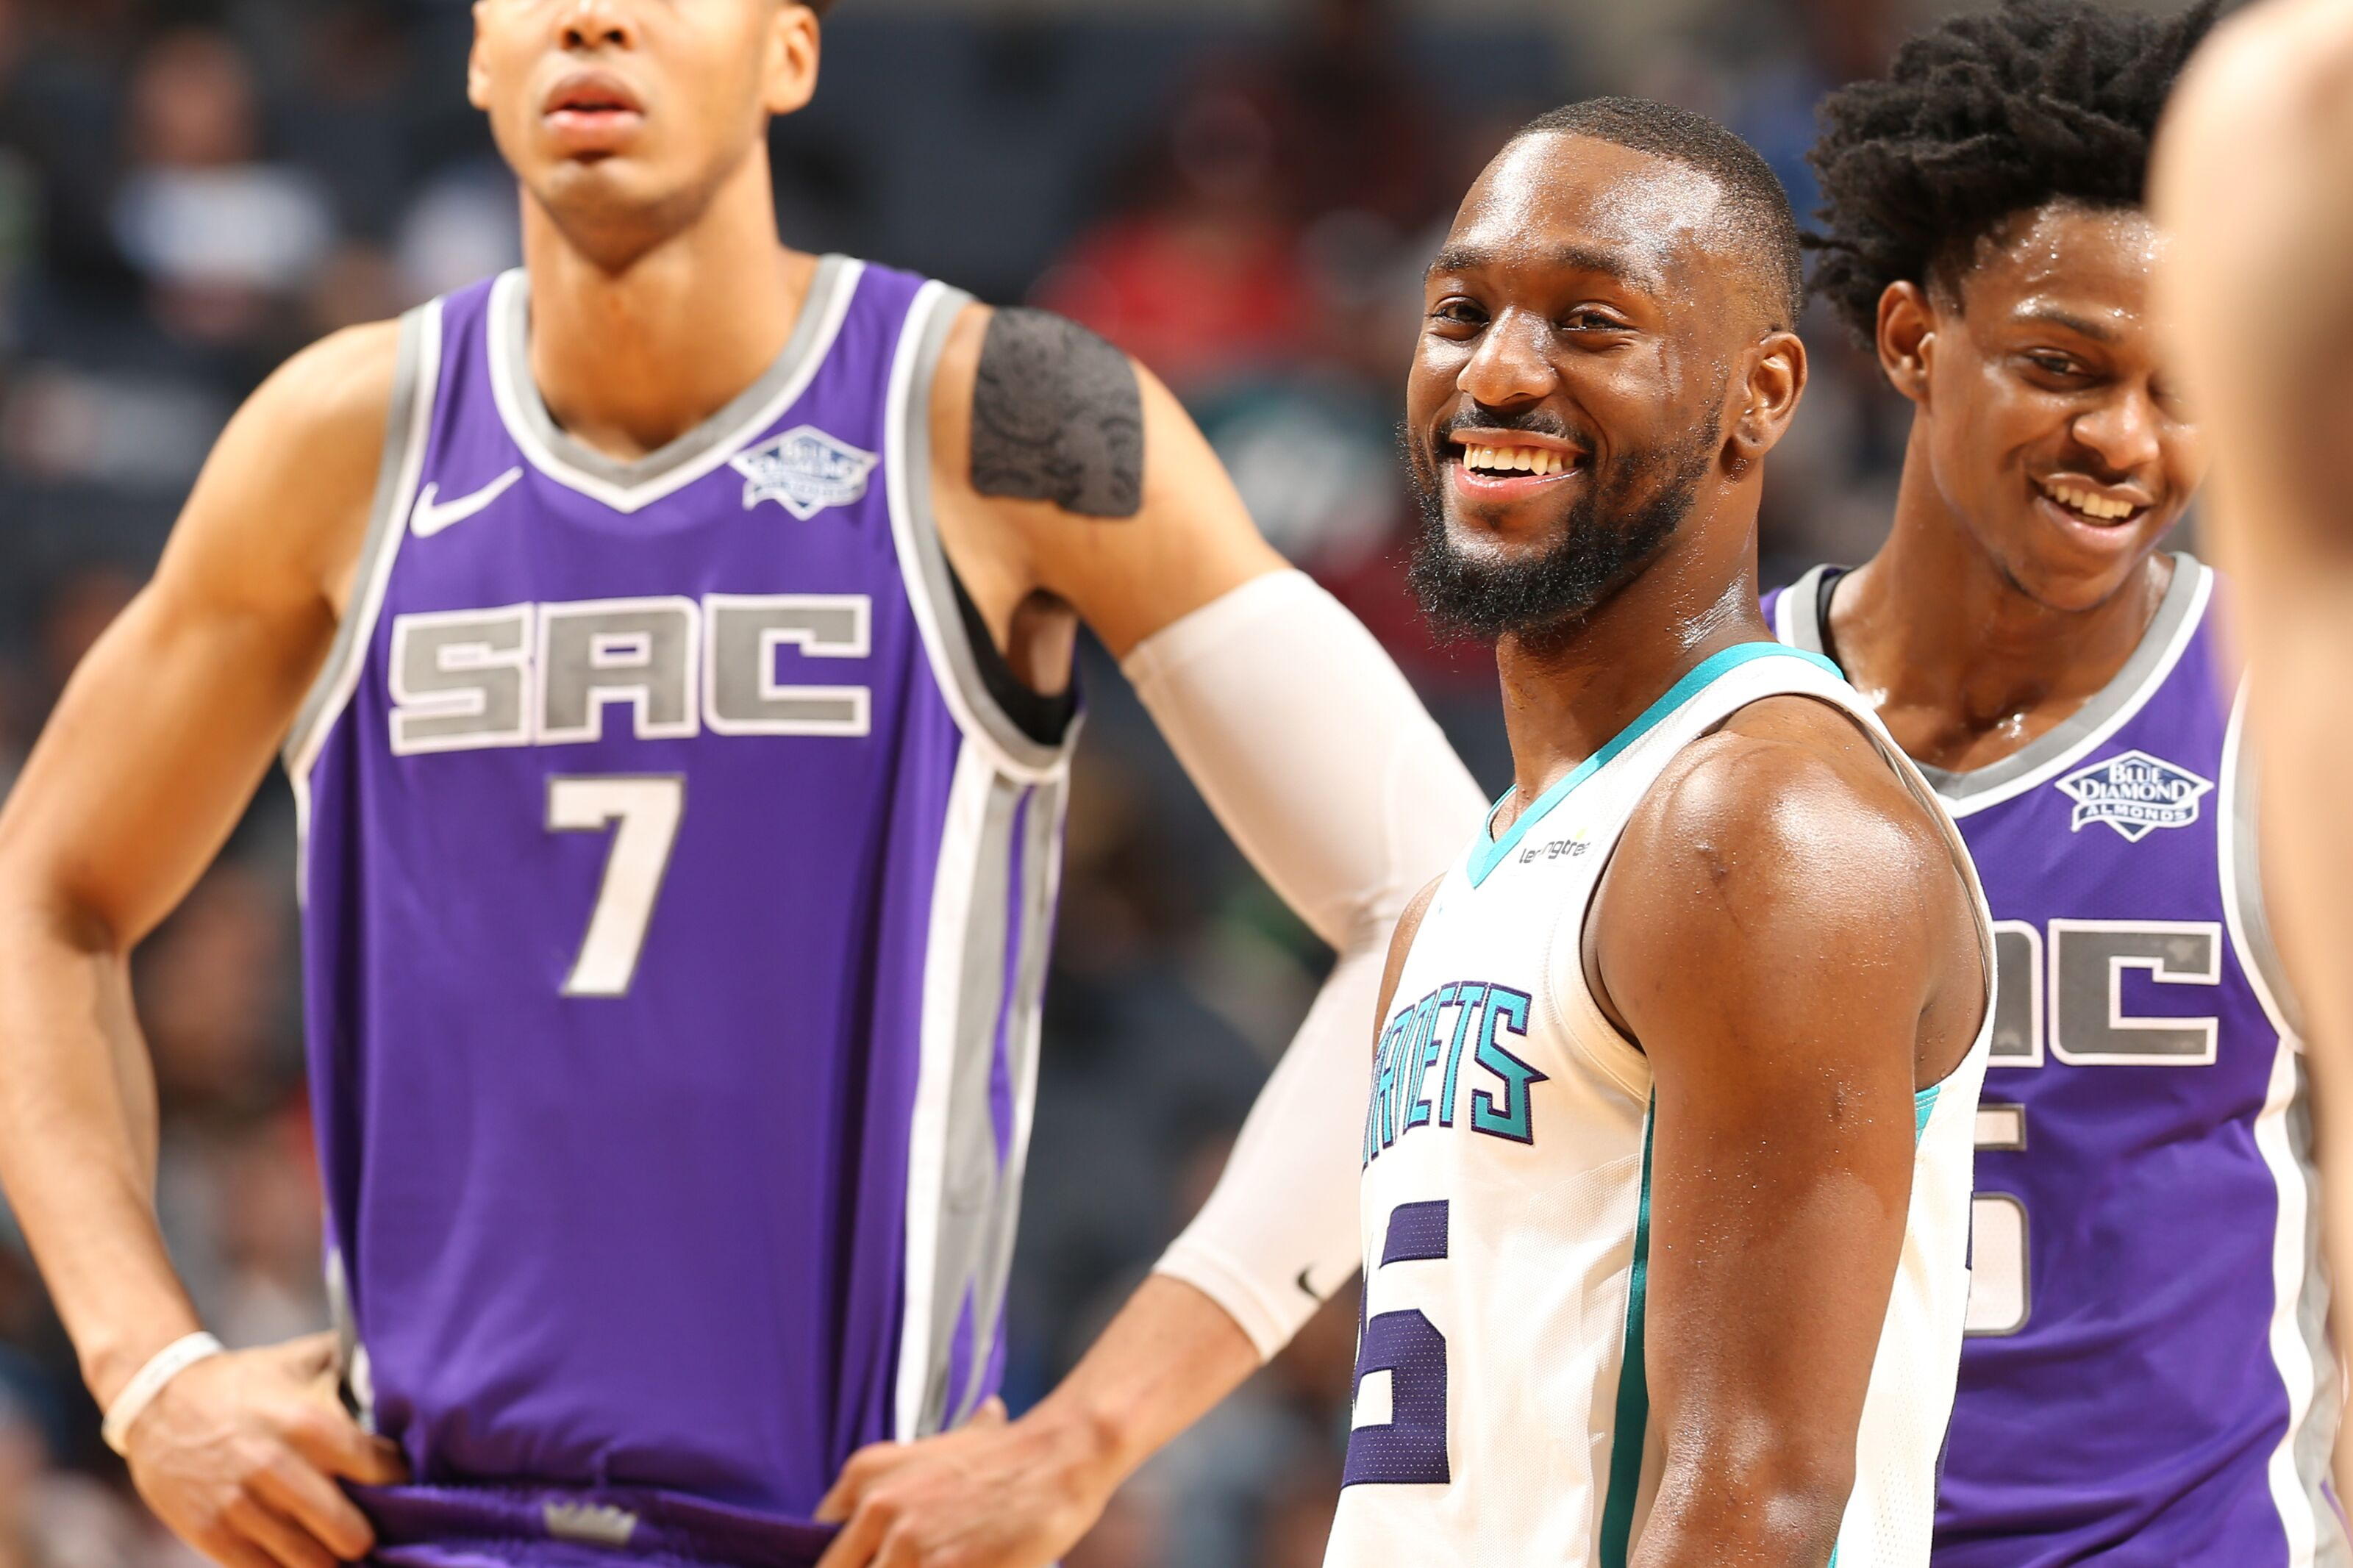 86de93fea Charlotte Hornets vs Sacramento Kings  NBA 2K19 prediction